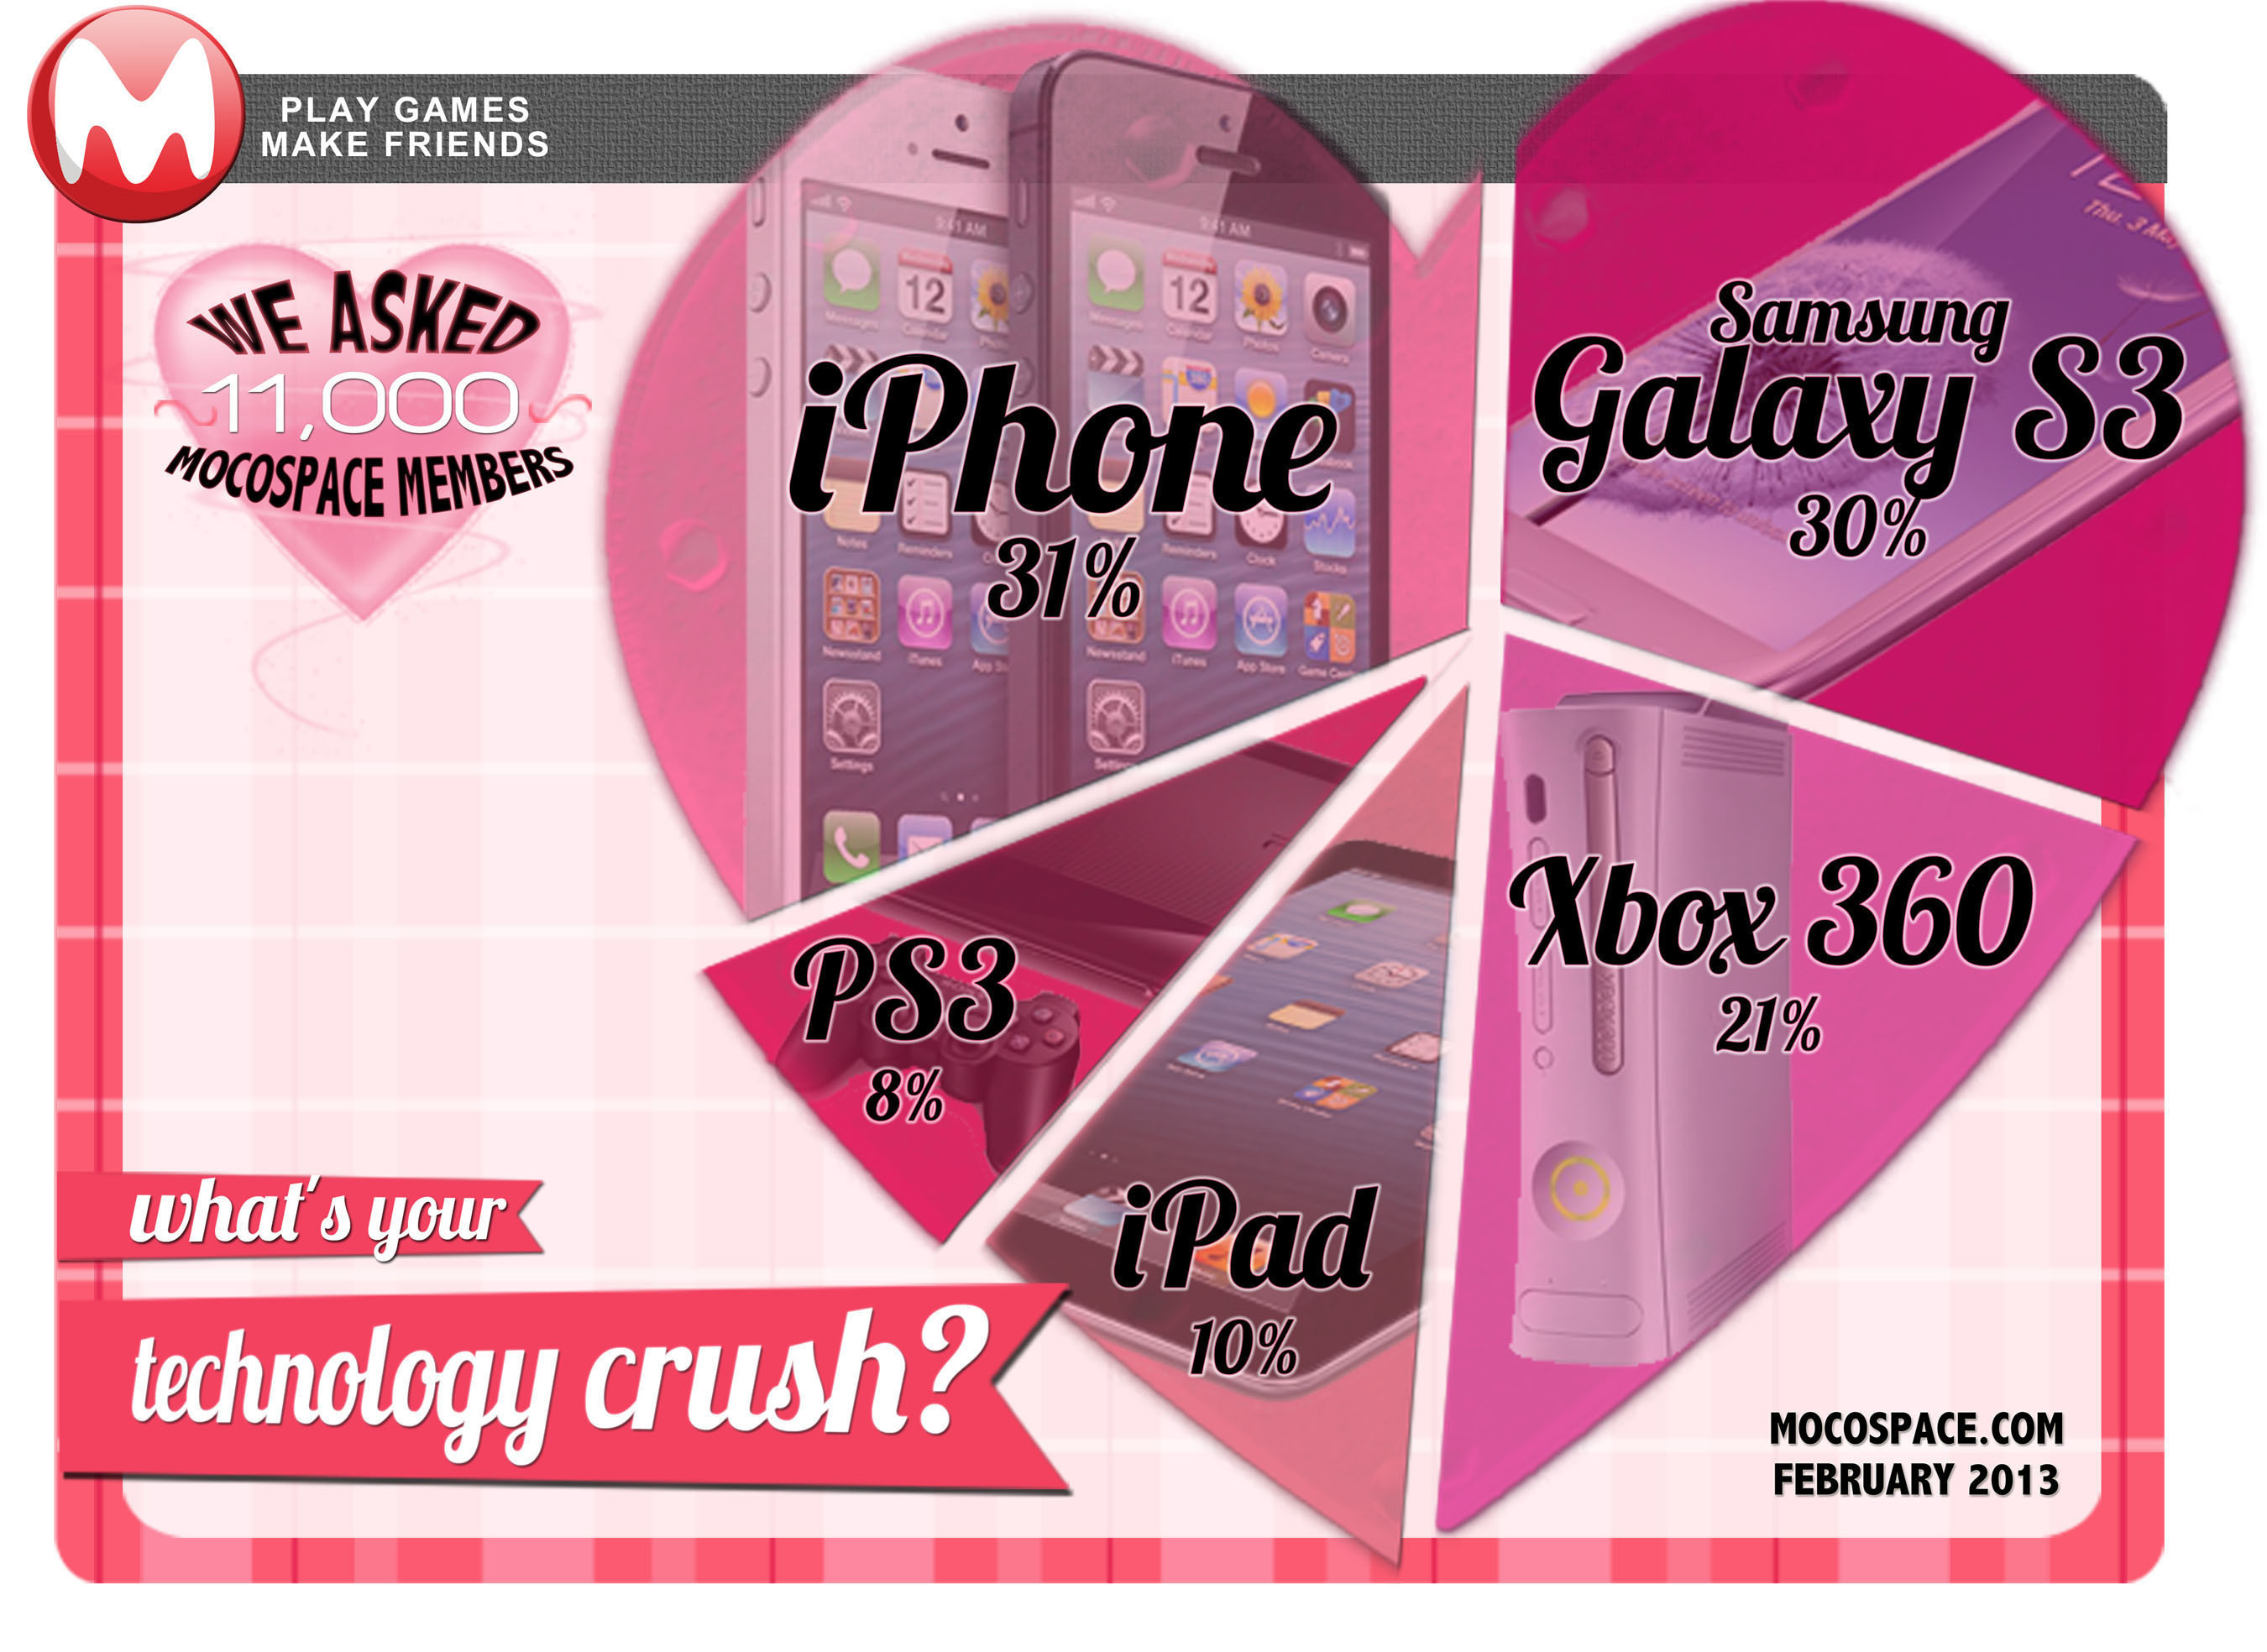 Will You Be My Valentine? MocoSpace Survey Shows People Love Their Phones